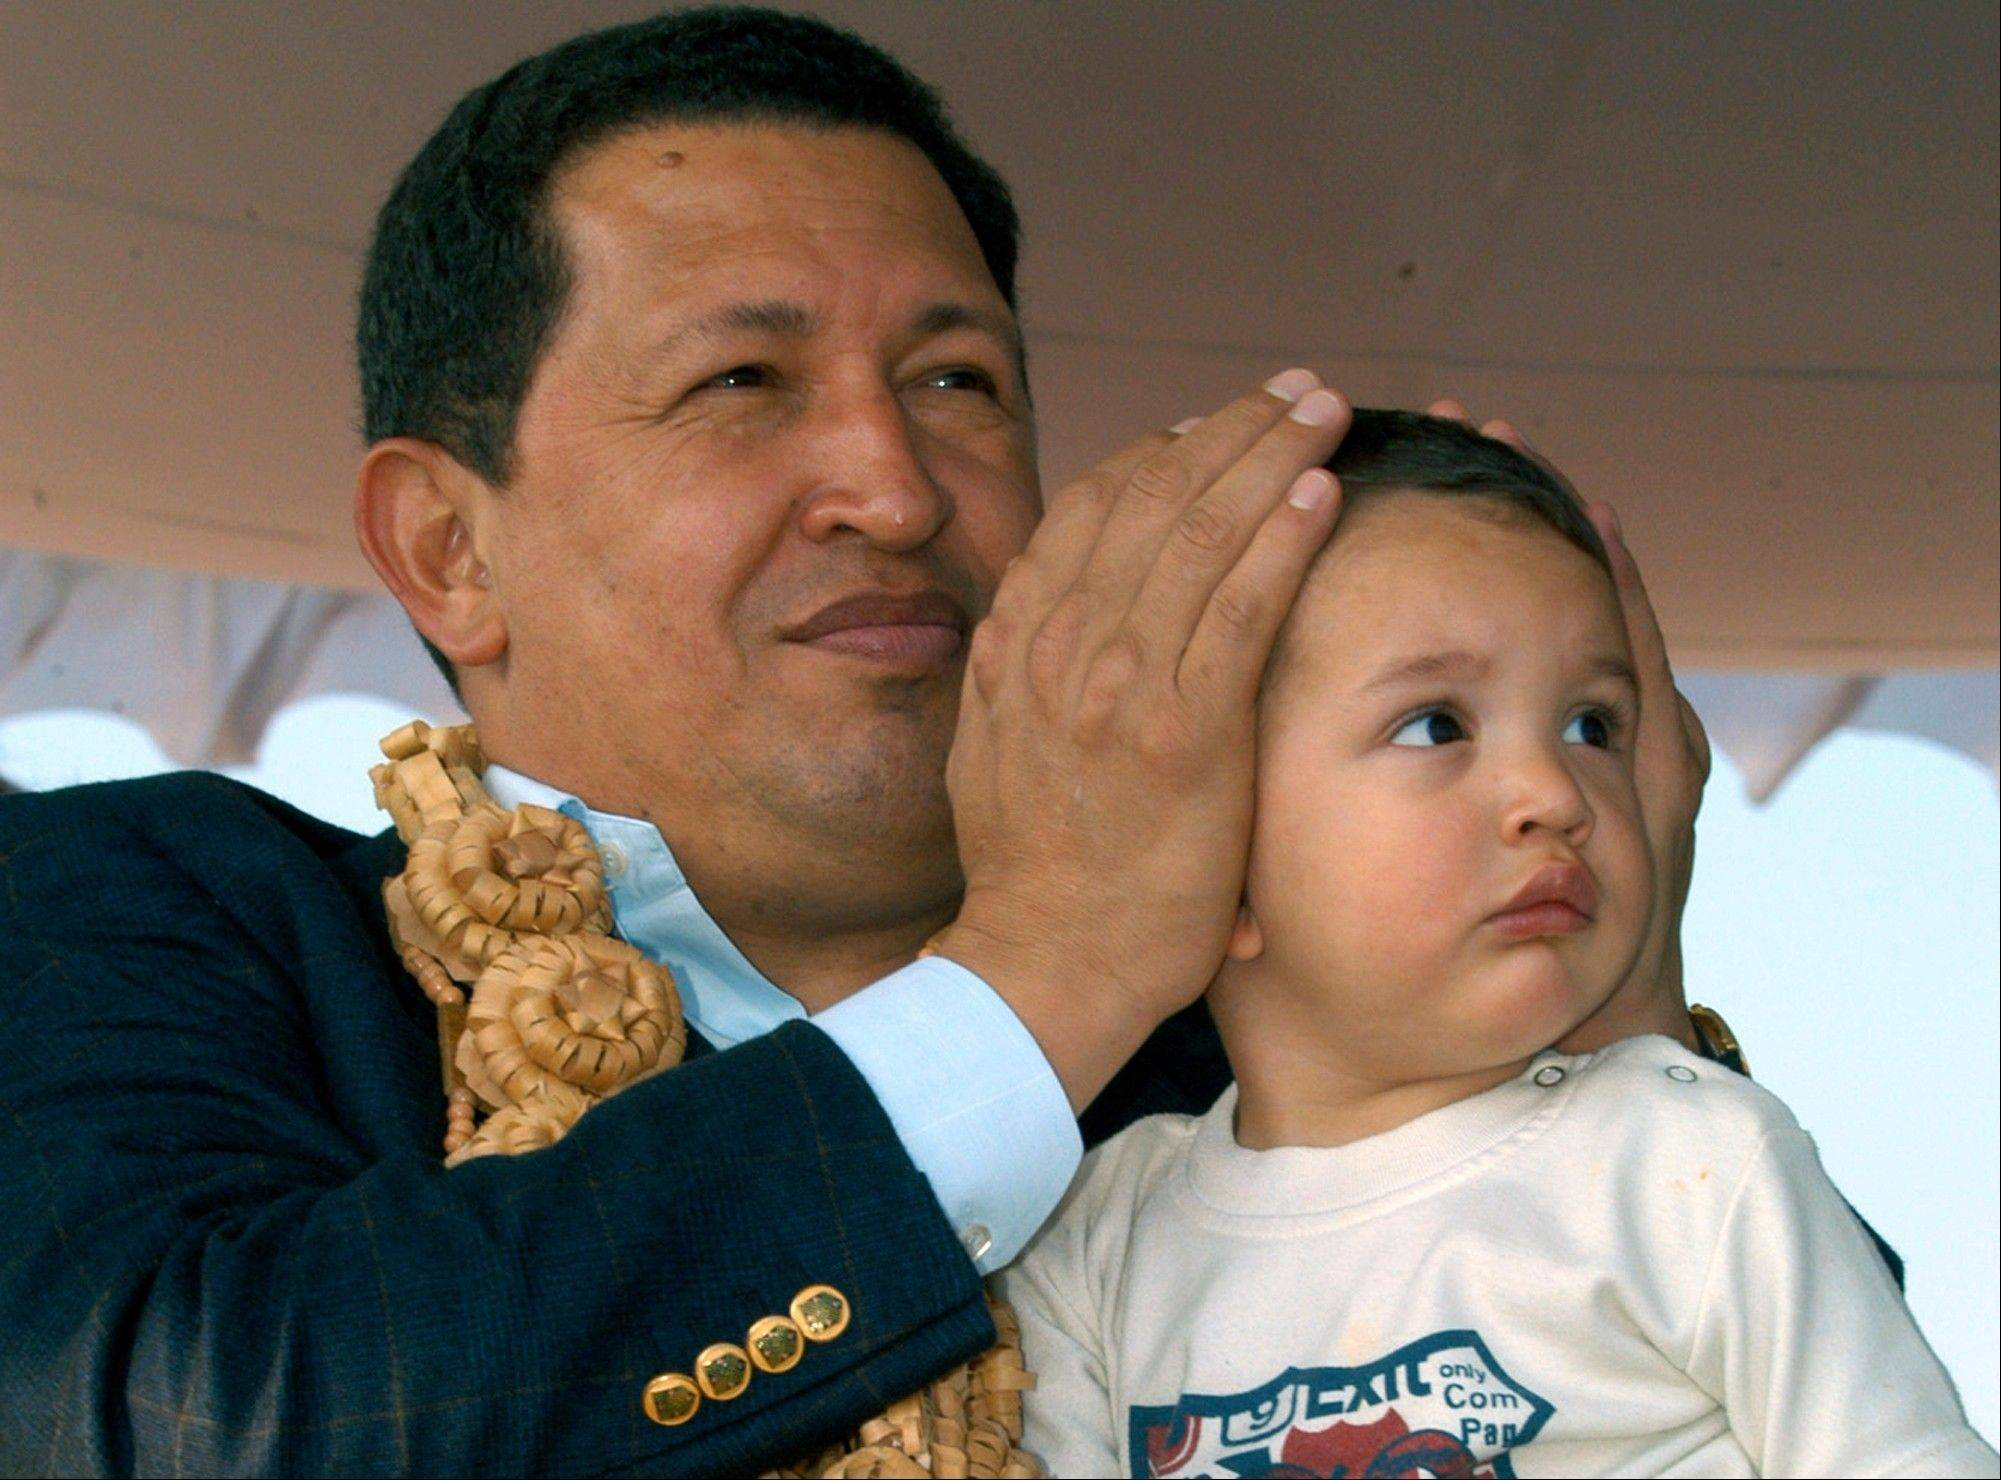 In this March 7, 2005 file photo, Venezuela's President Hugo Chavez covers the ears of his grandson Manolito as they watch a display by Hindustan Aeronautics Limited (HAL) aircrafts at the airport in Bangalore, India.